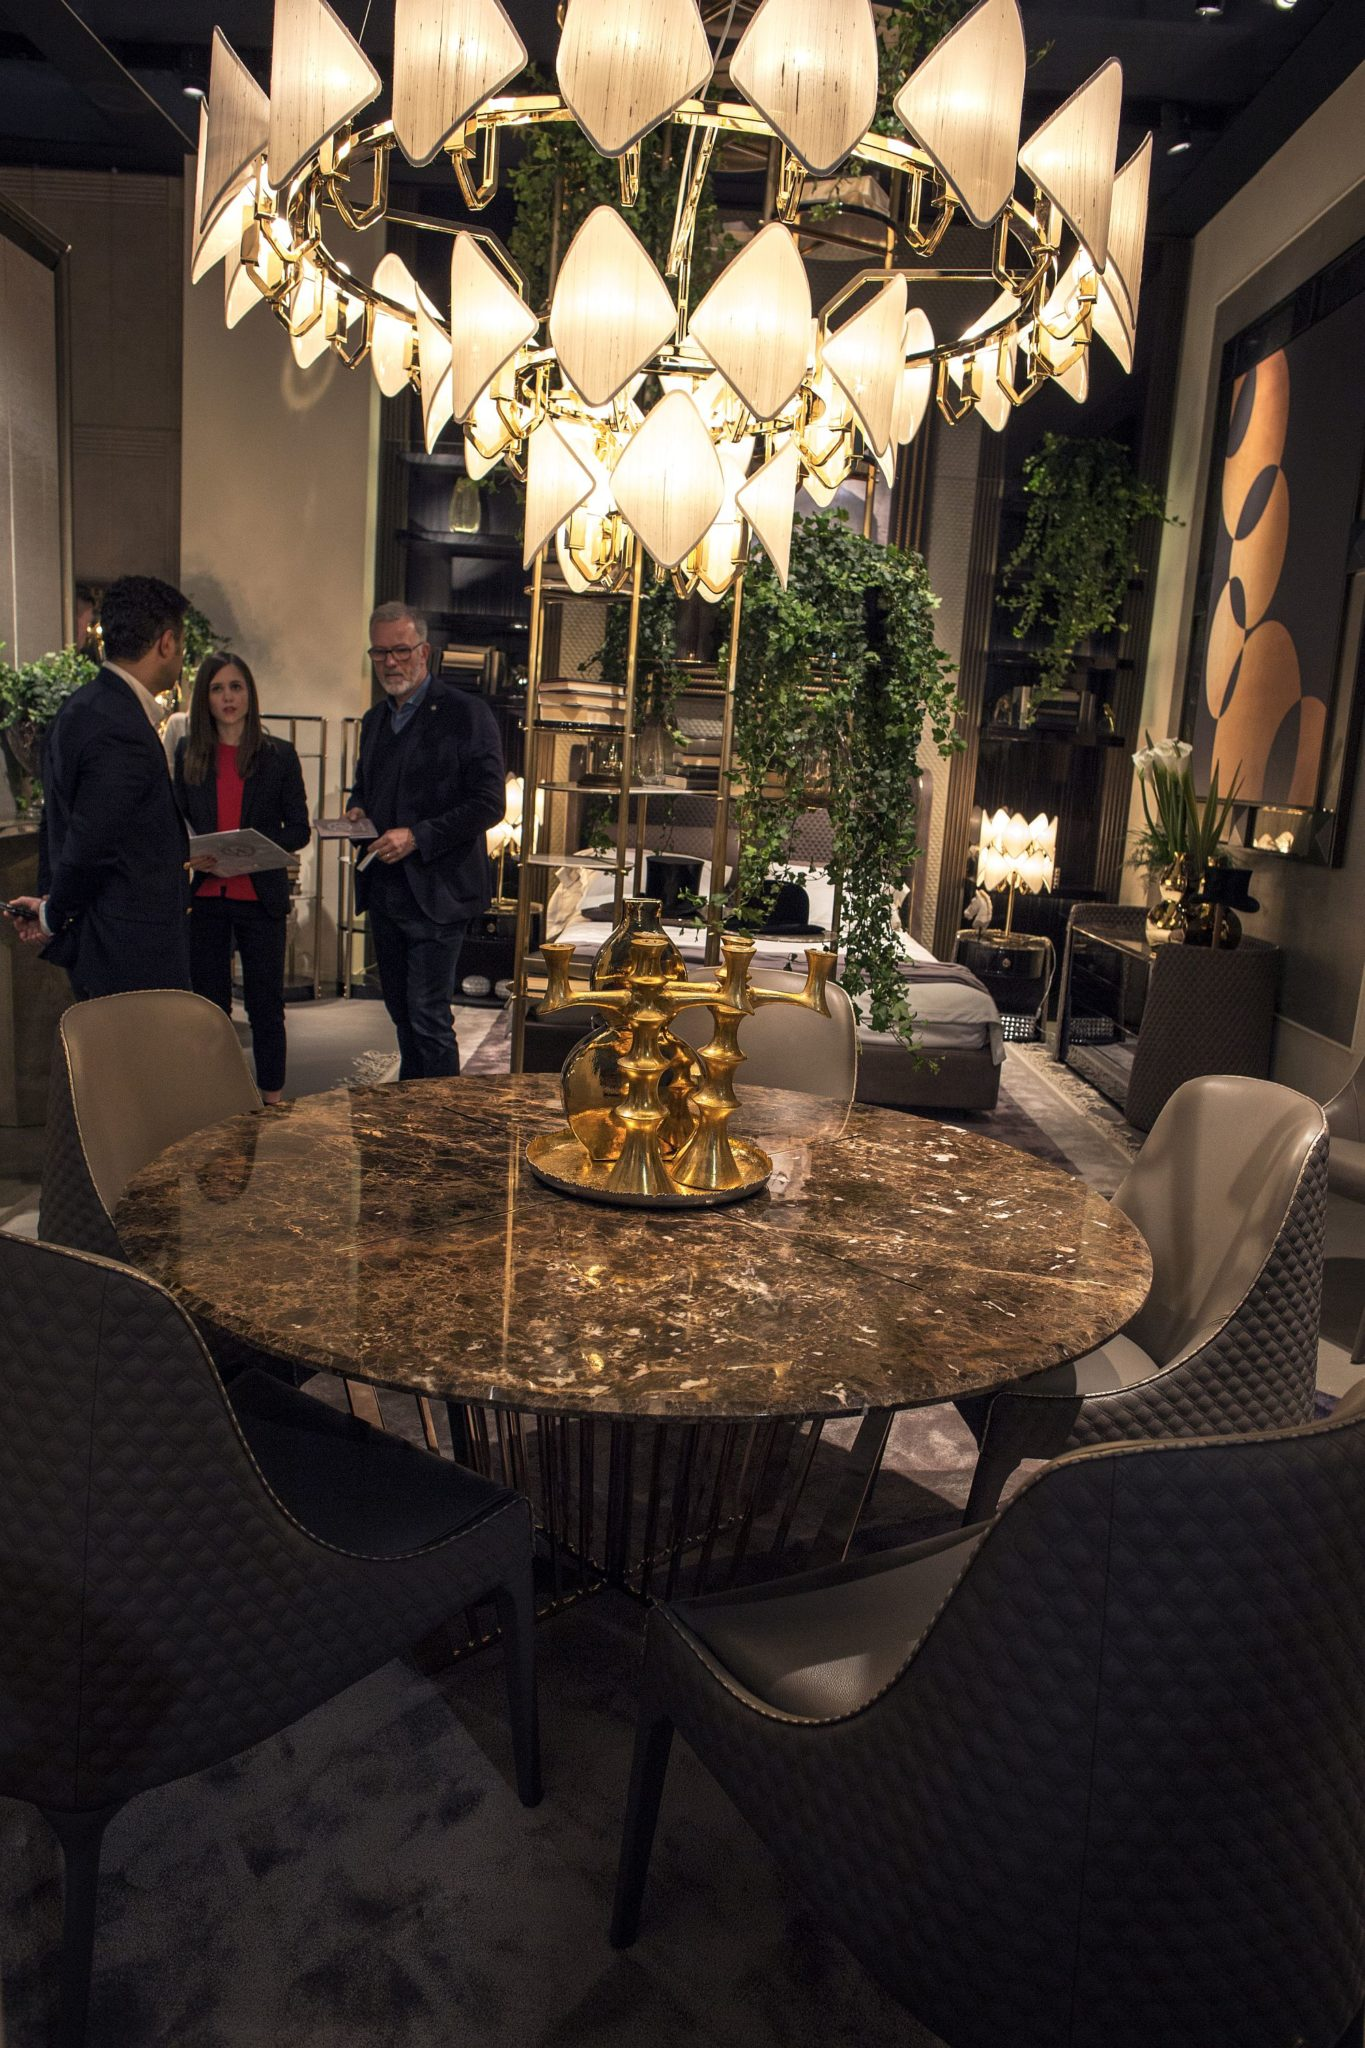 Vittoria-Frigerio-brings-presonalized-beauty-to-the-luxurious-dining-room